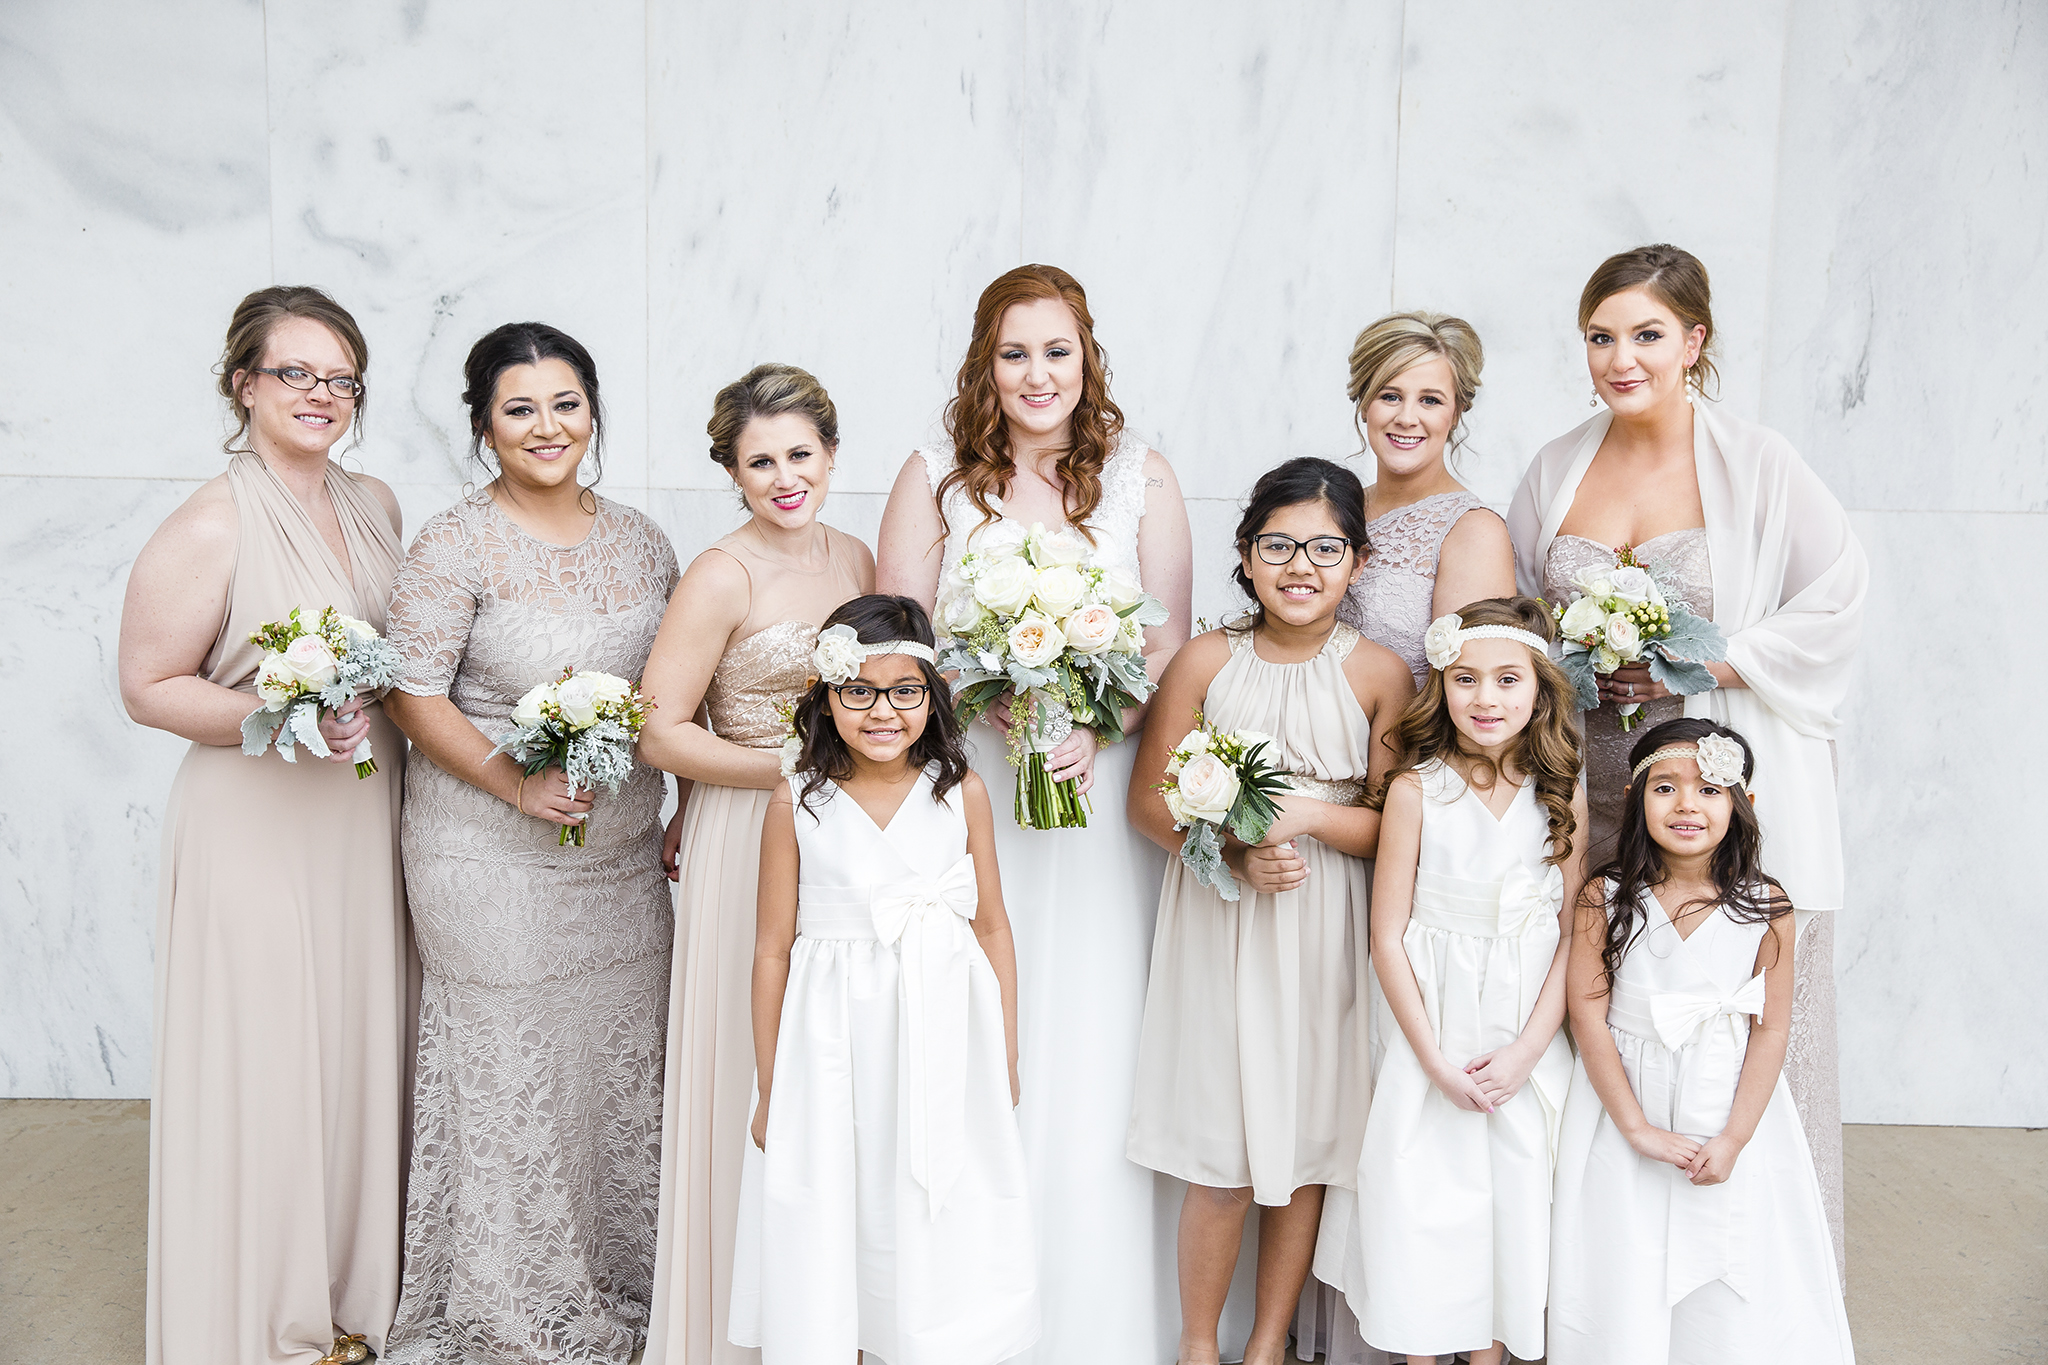 bridal party, bridesmaids, wedding day portraits, mother and daughters